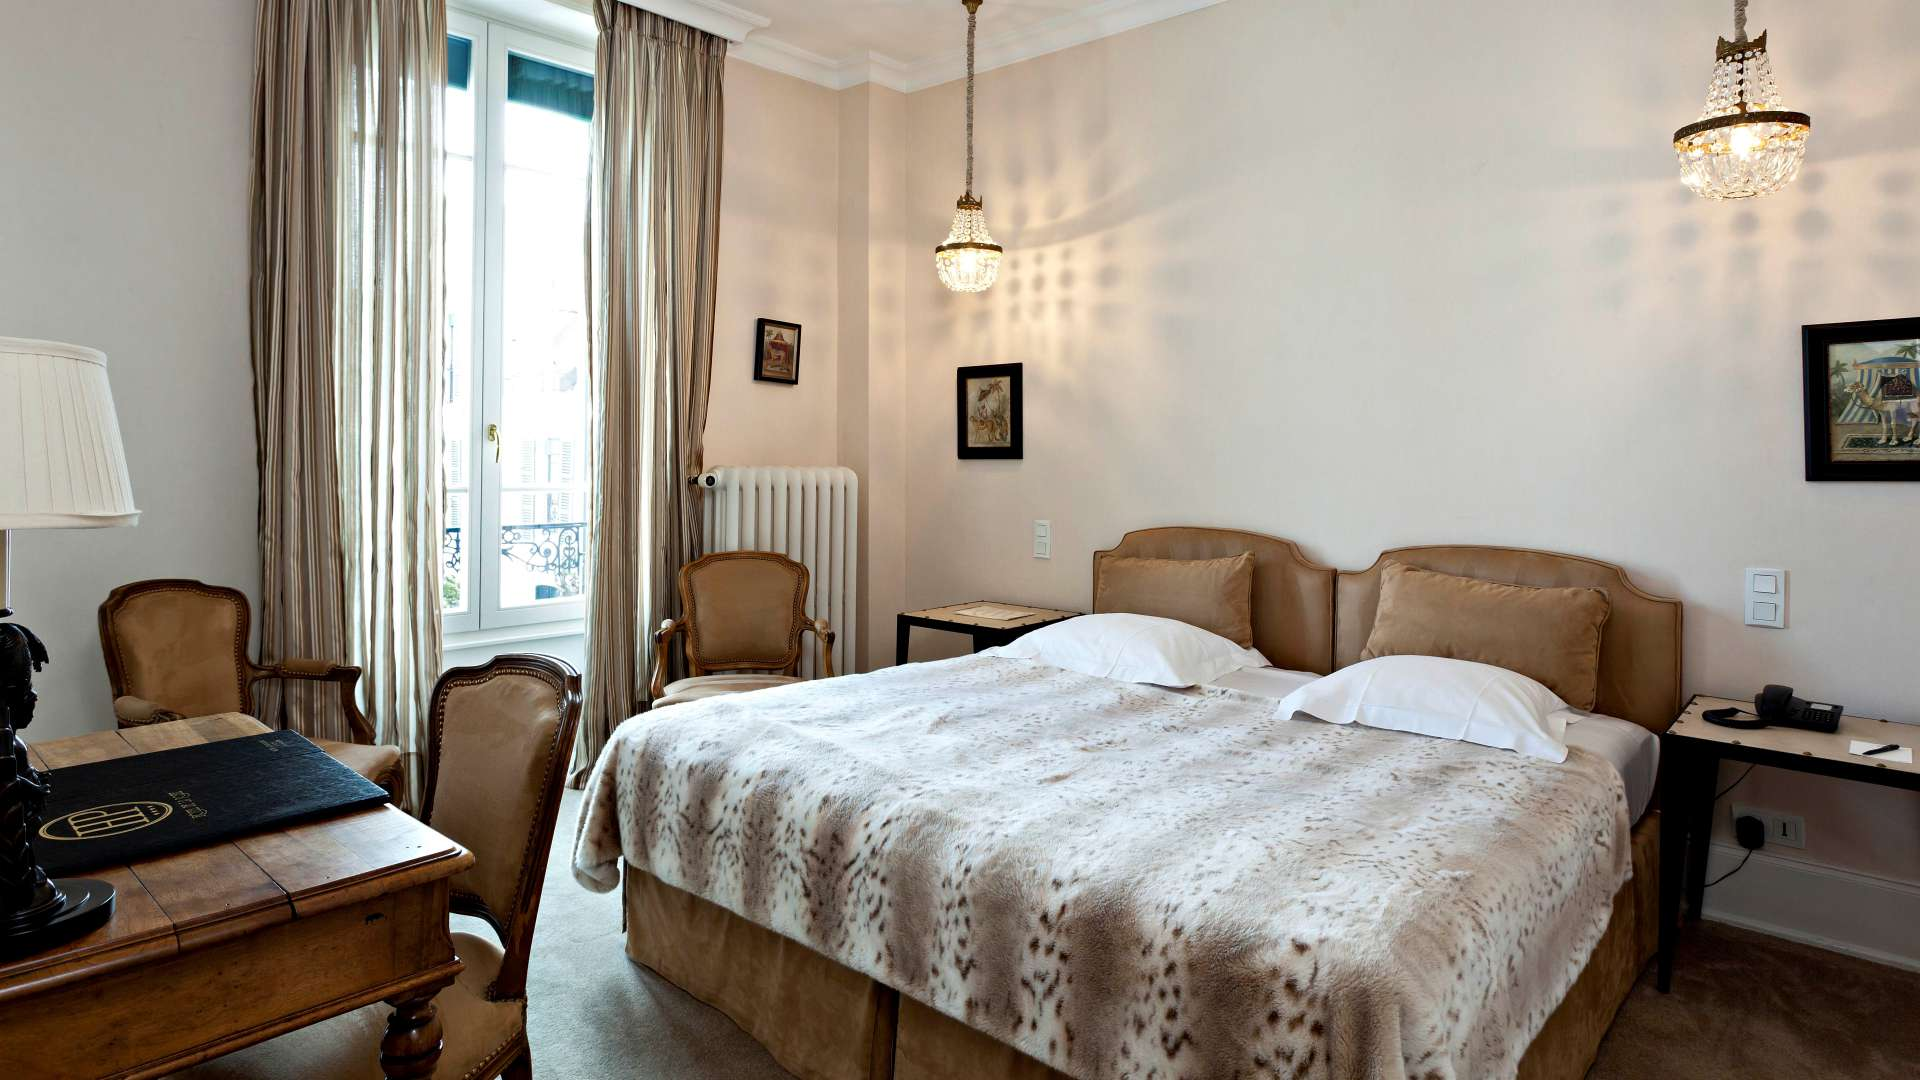 Chambre charme r servez chambre d 39 h tel beaune najeti for Chambre d hotel nice